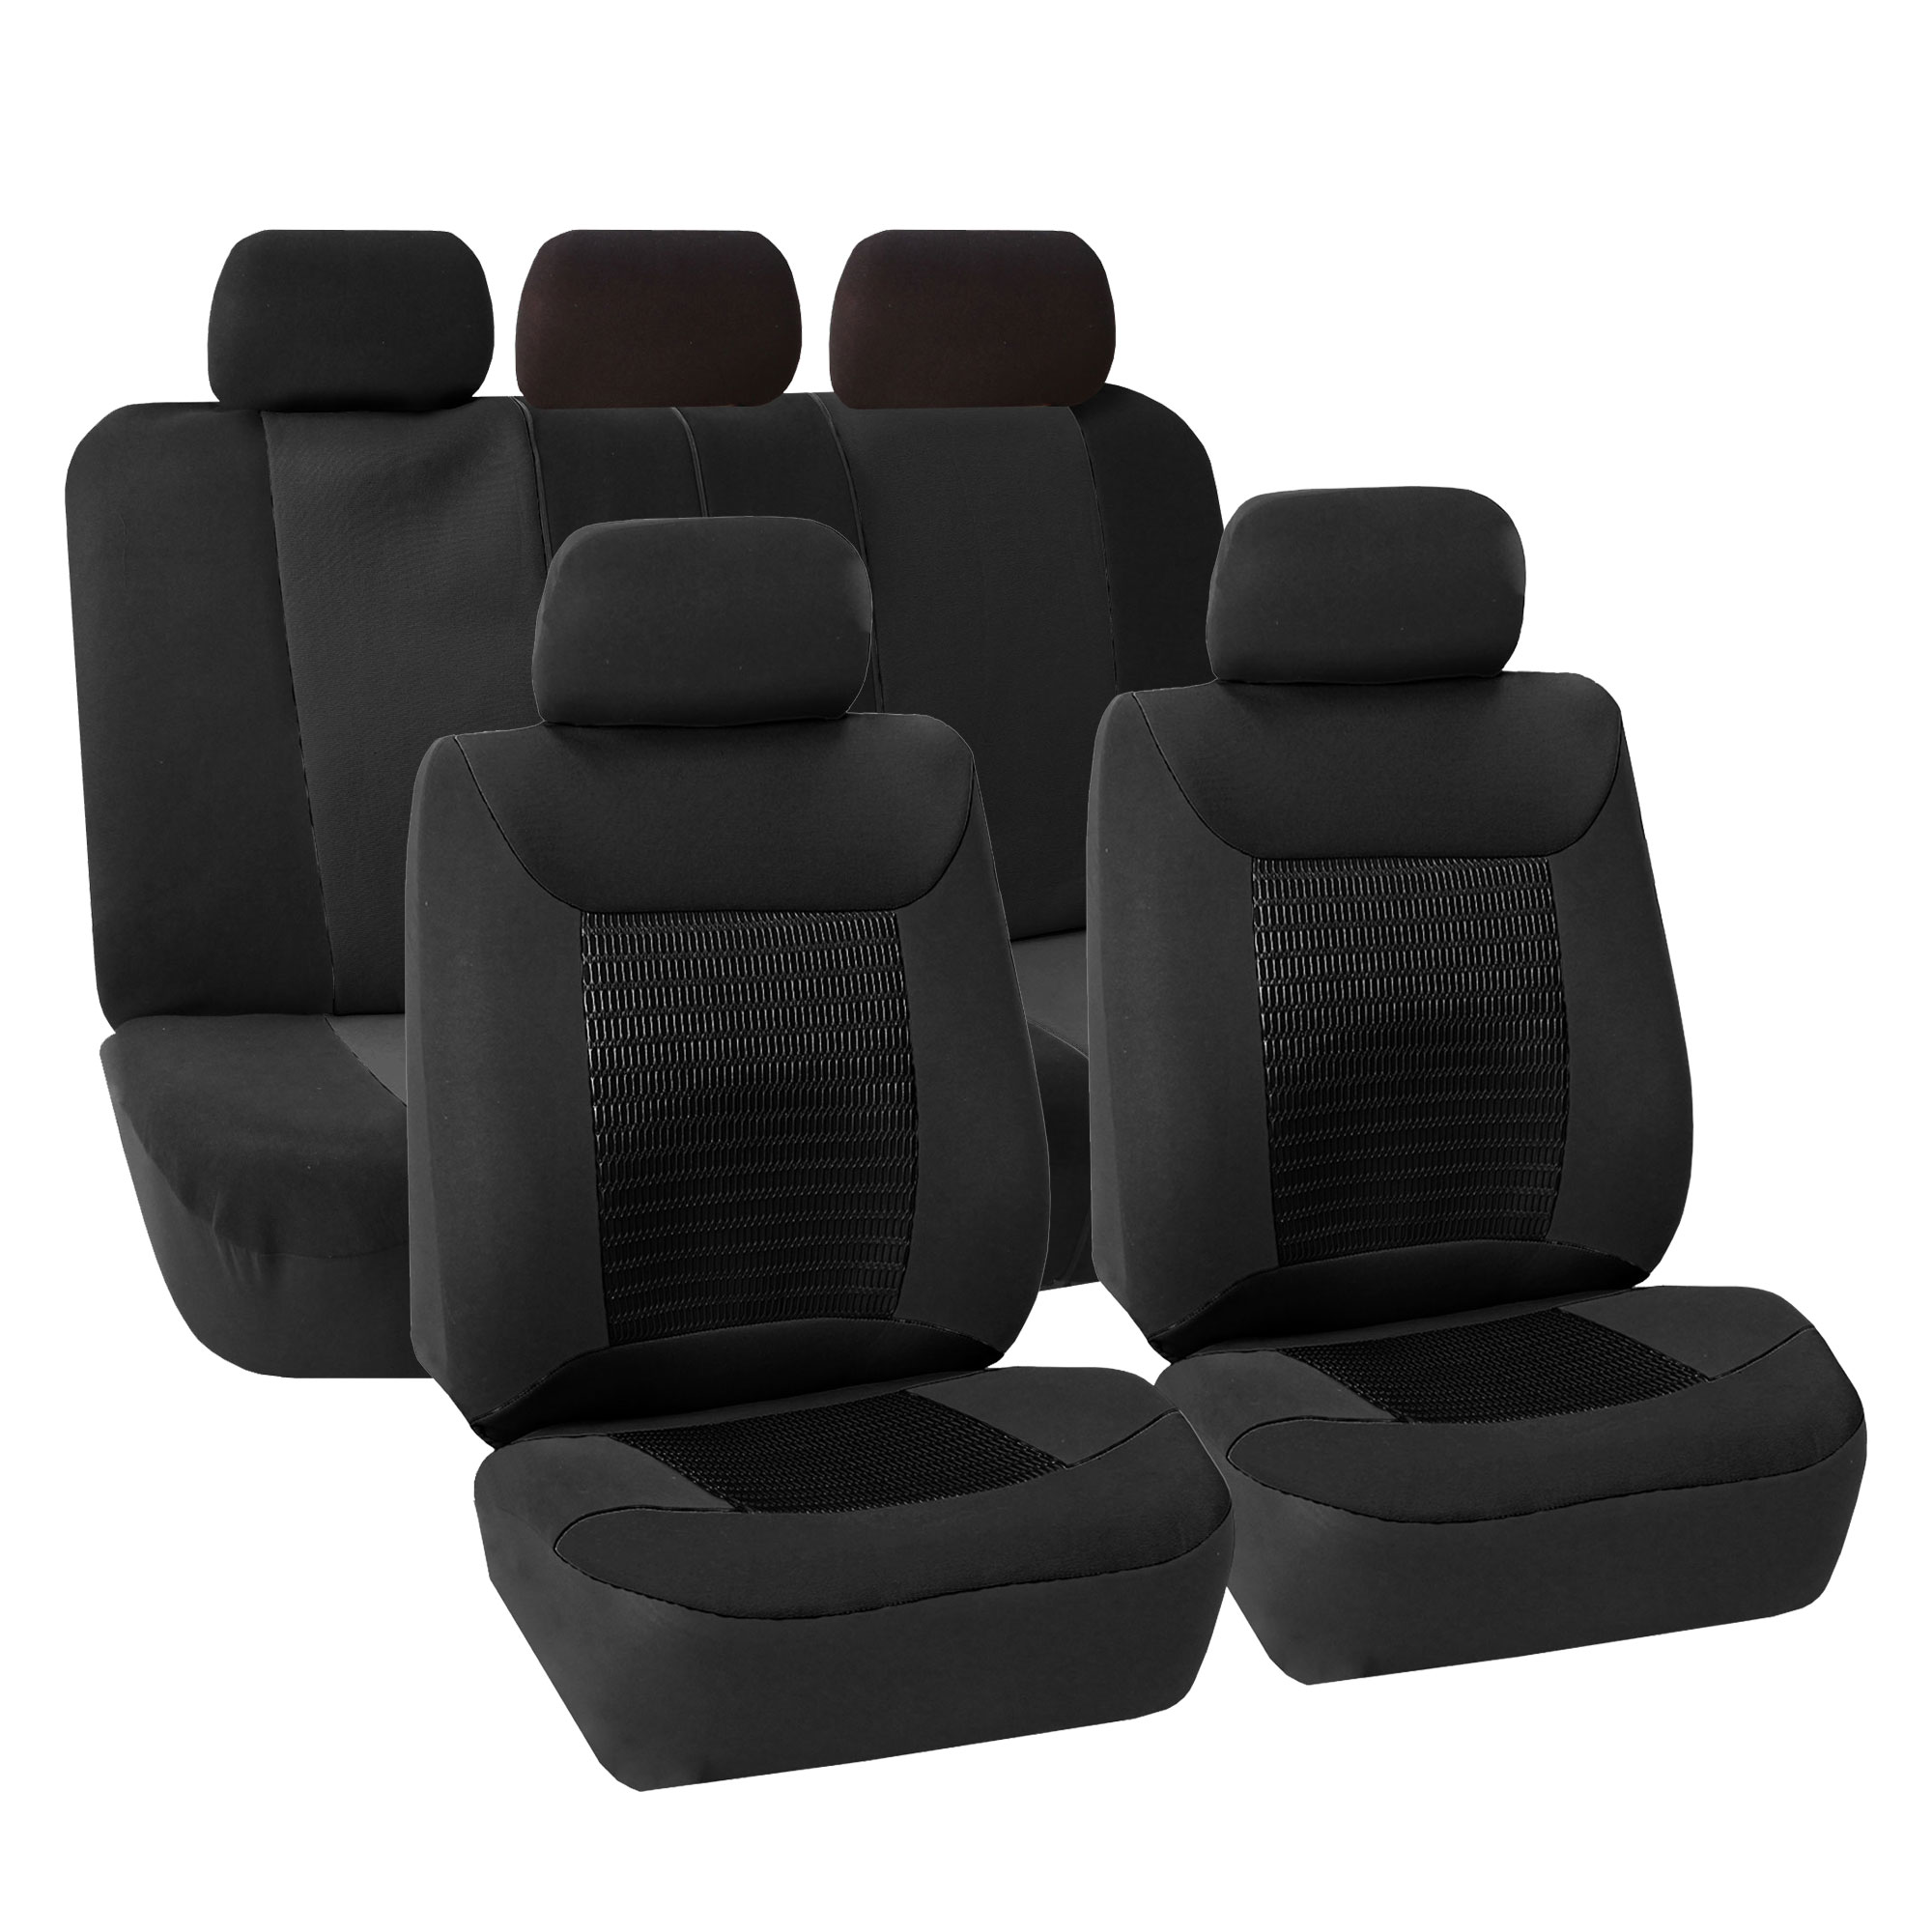 Car Seat Covers Black Set For Auto Sedan SUV W 5 Head Rests